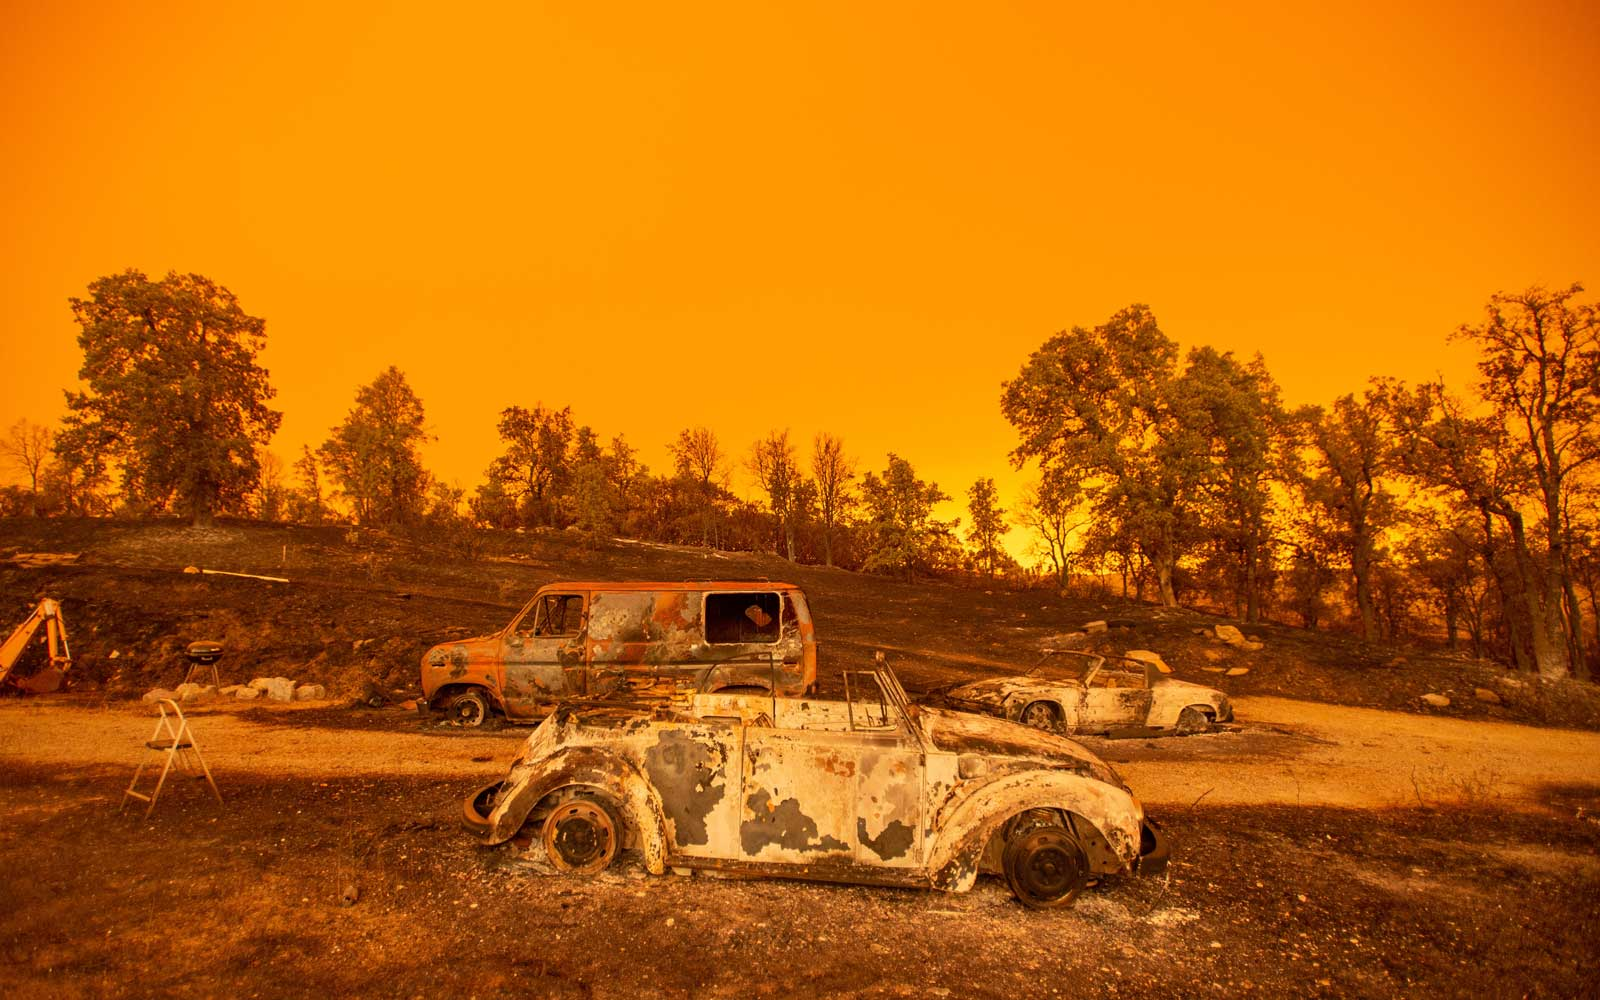 Burned down vehicles sit at a property under a deep orange sky during the Carr fire near Redding, California on July 27, 2018